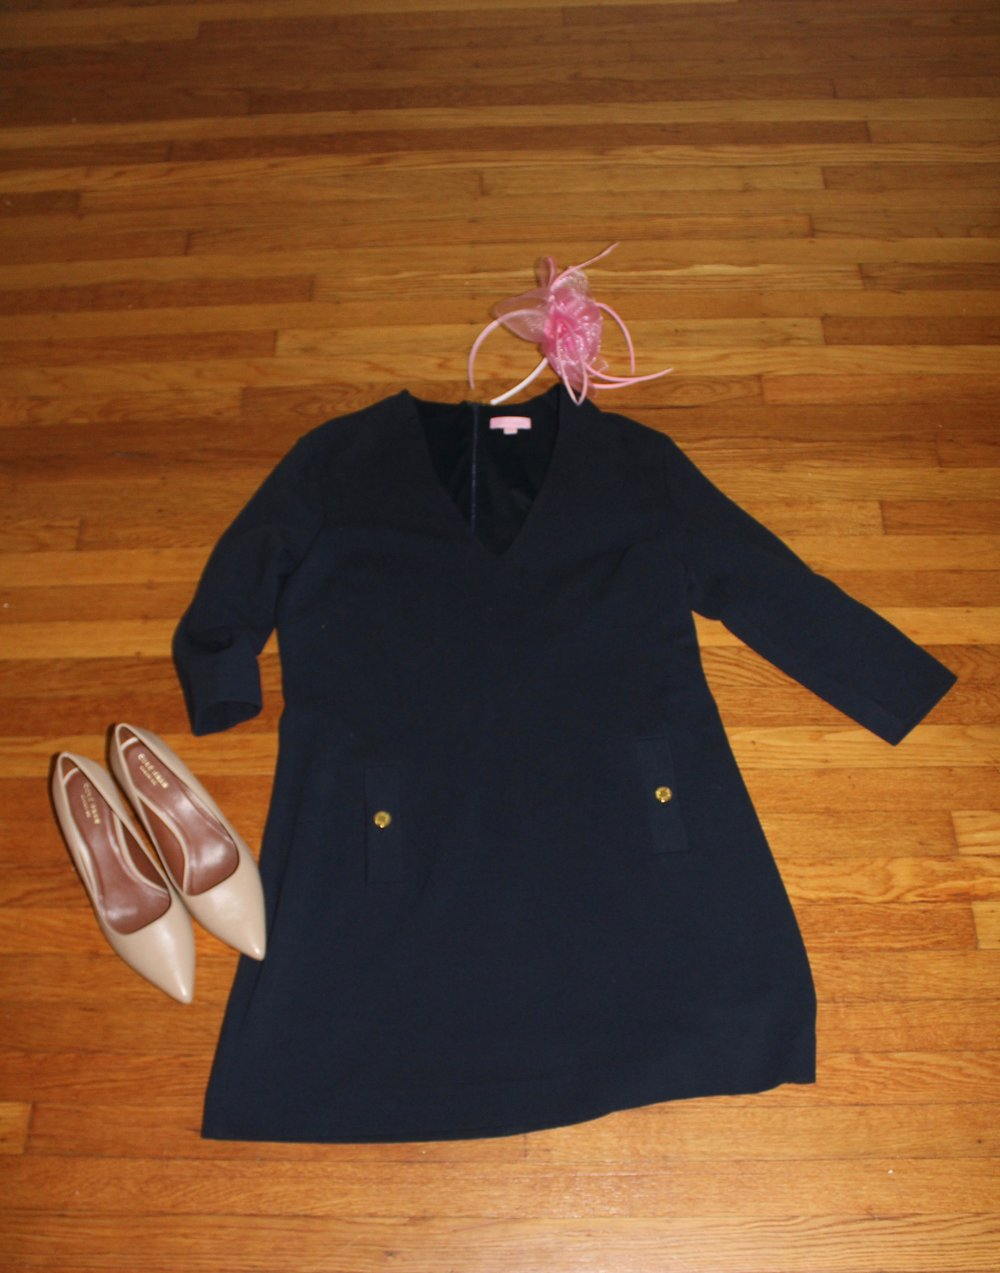 Cole Haan Shoes | Lilly Pulitzer Dress | Off Broadway Shoes Kentucky Derby style